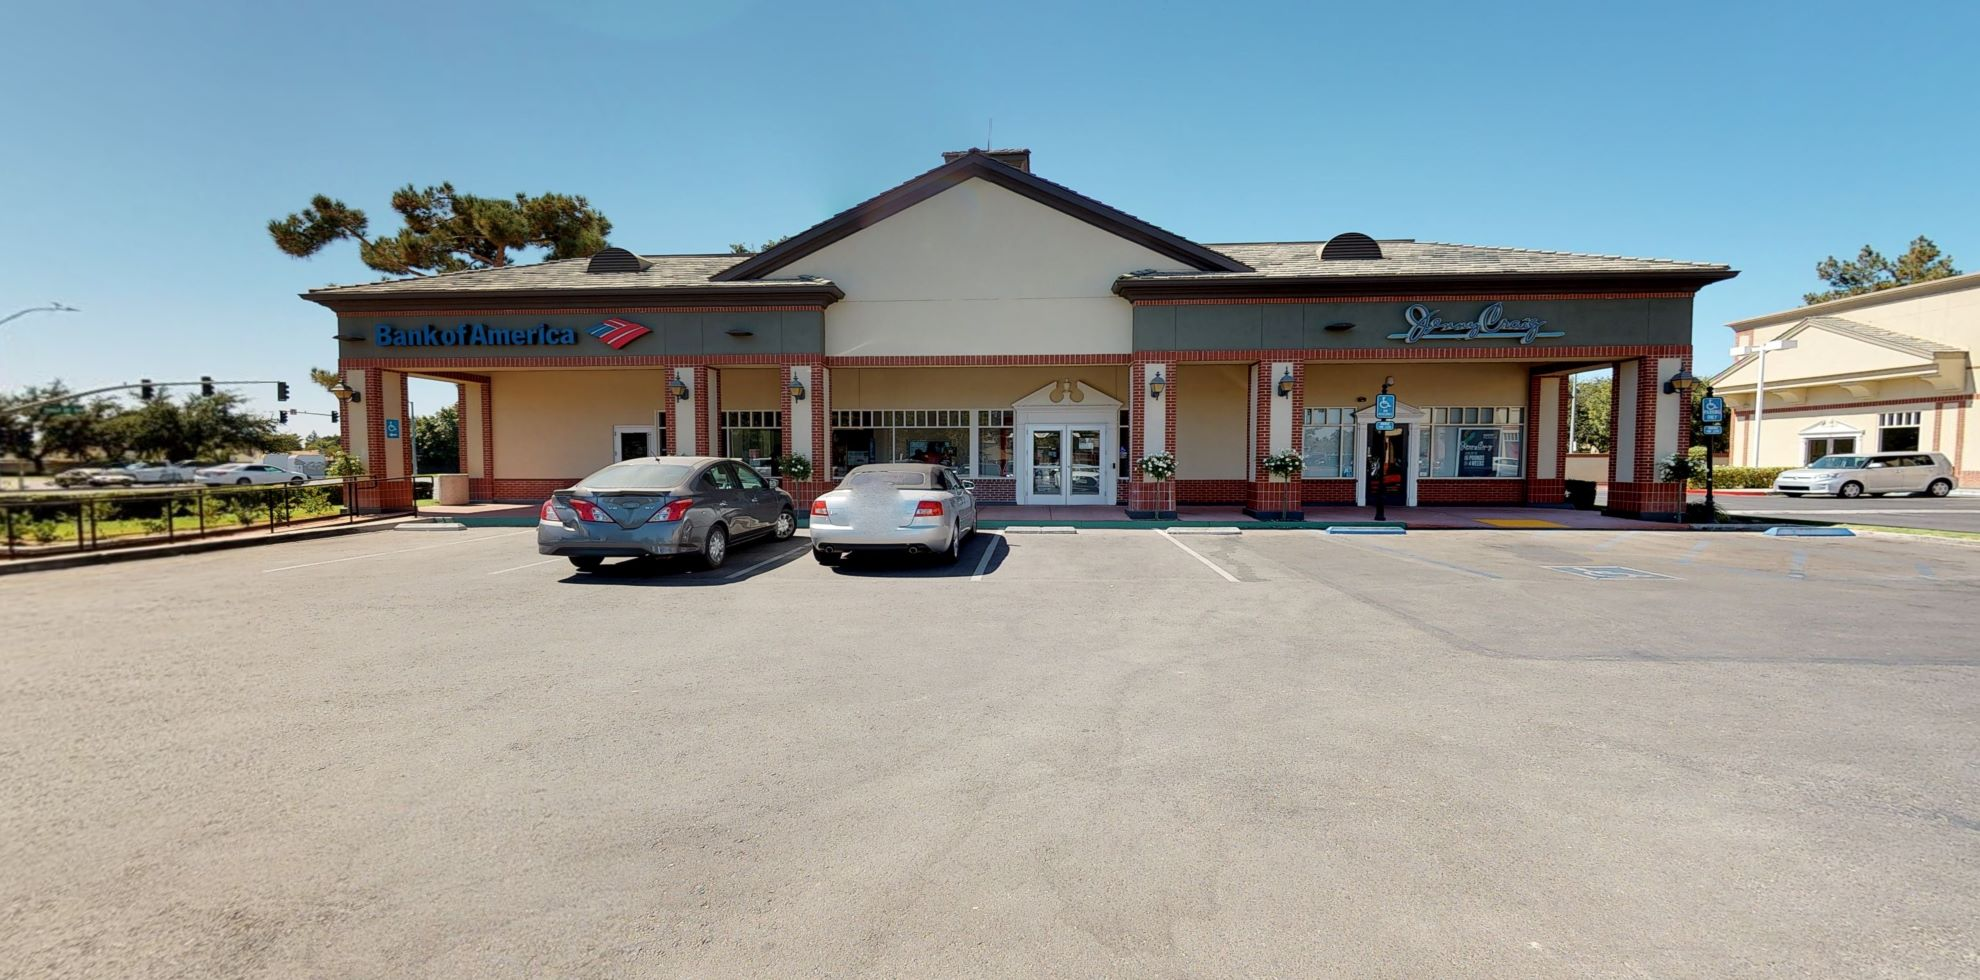 Bank of America financial center with walk-up ATM   9000 Ming Ave STE R3, Bakersfield, CA 93311